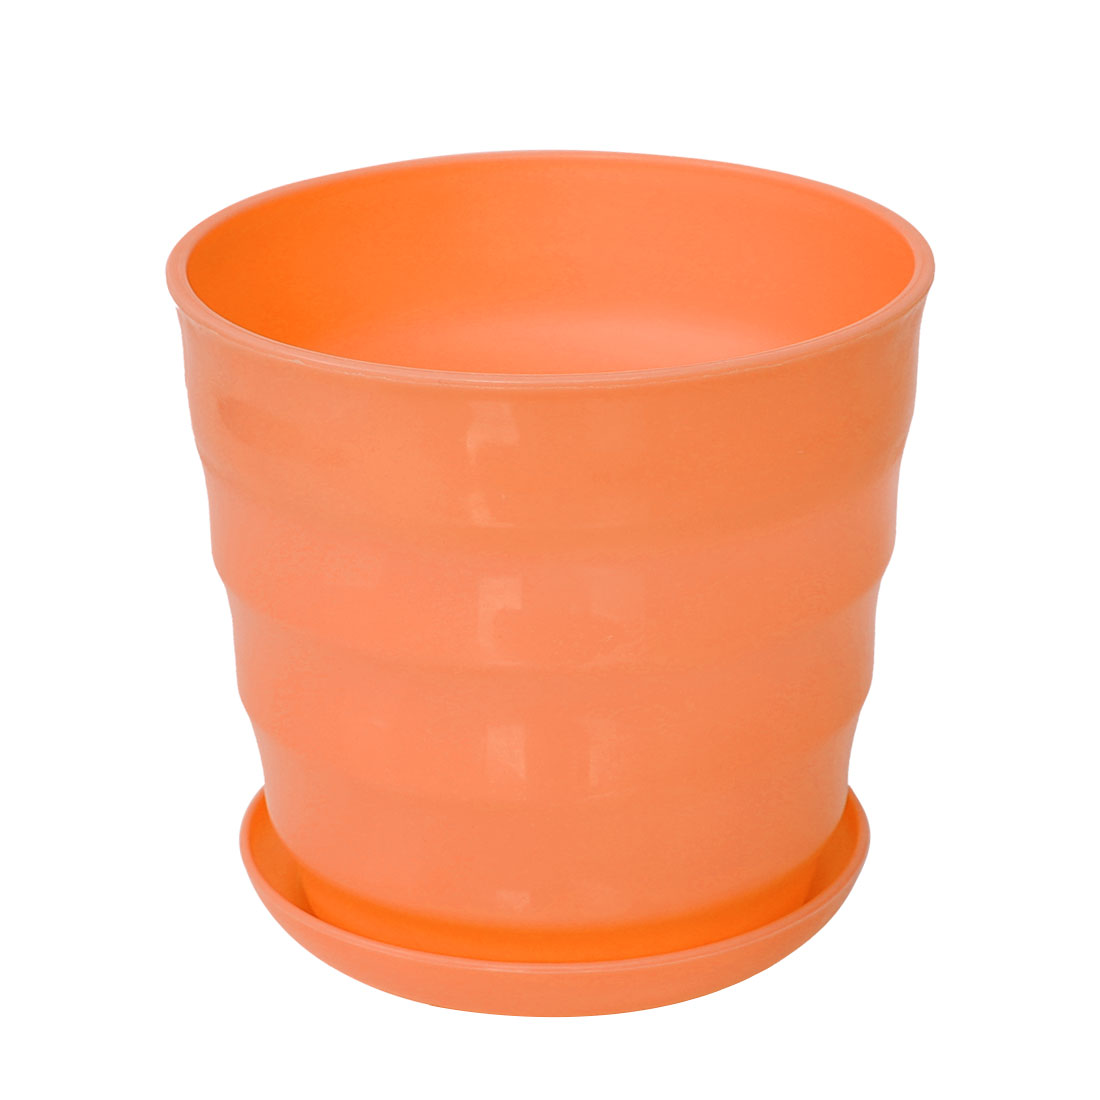 Home Office Garden Plastic Plant Planter Flower Pot Orange 12.5cm Dia w Tray